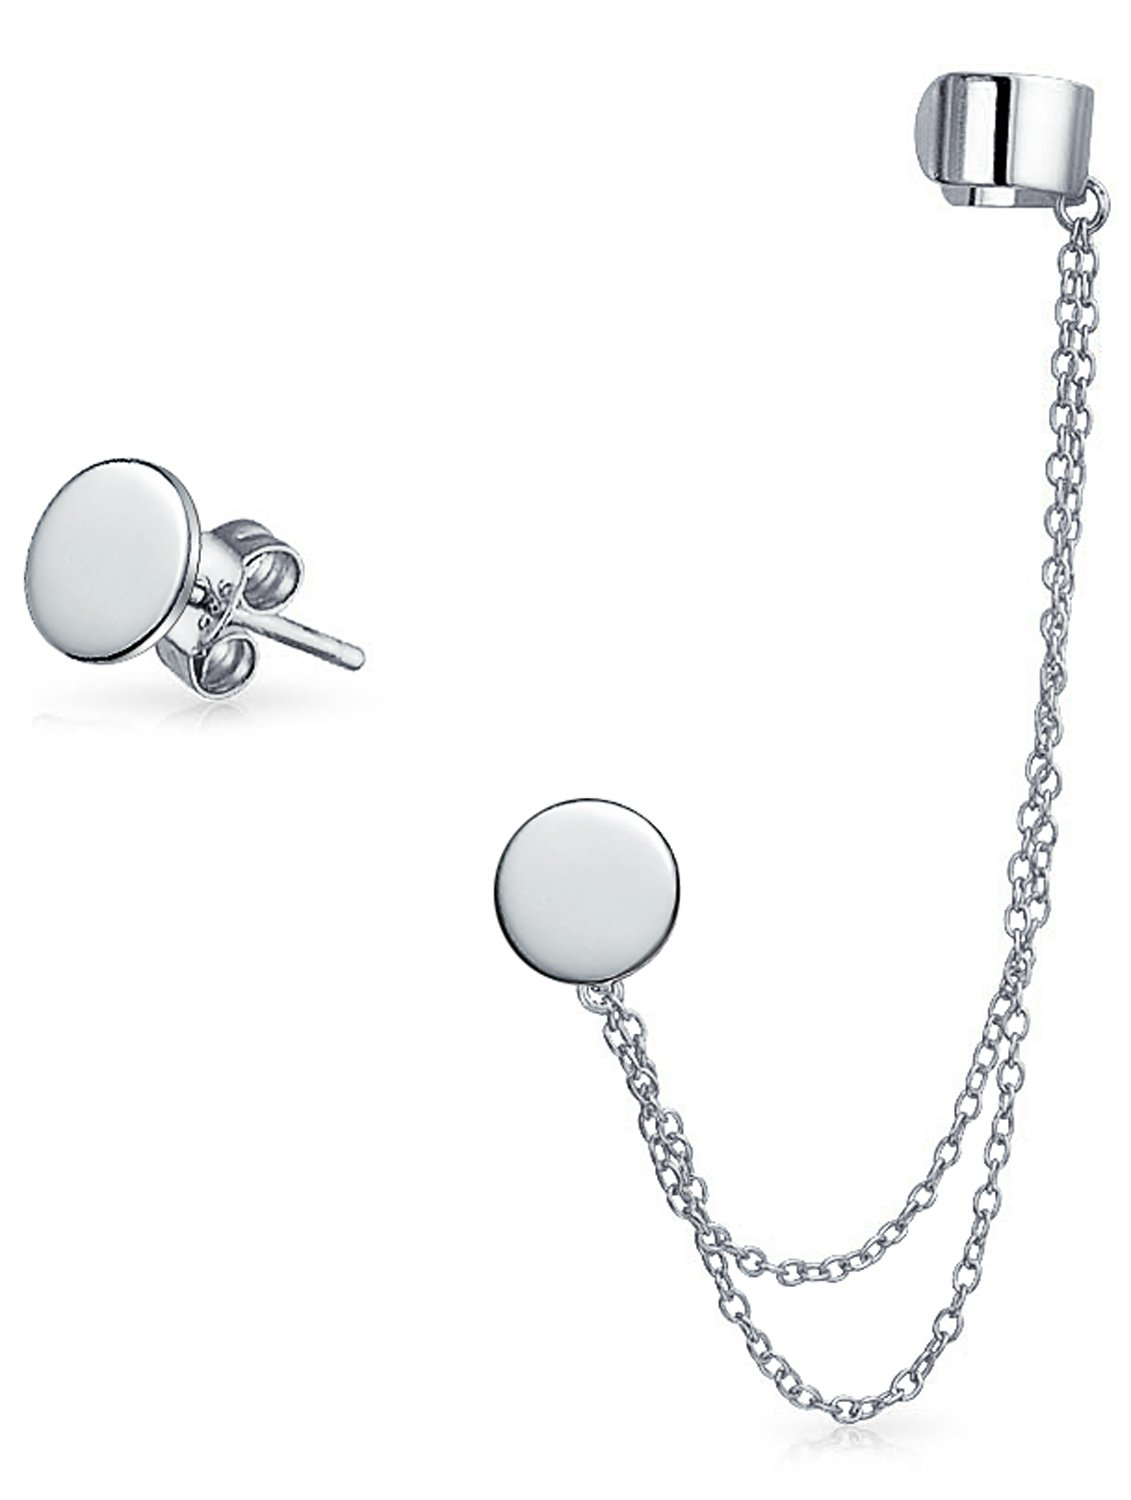 Sterling Silver Round Double Chain Linked Ear Cuff Stud Set